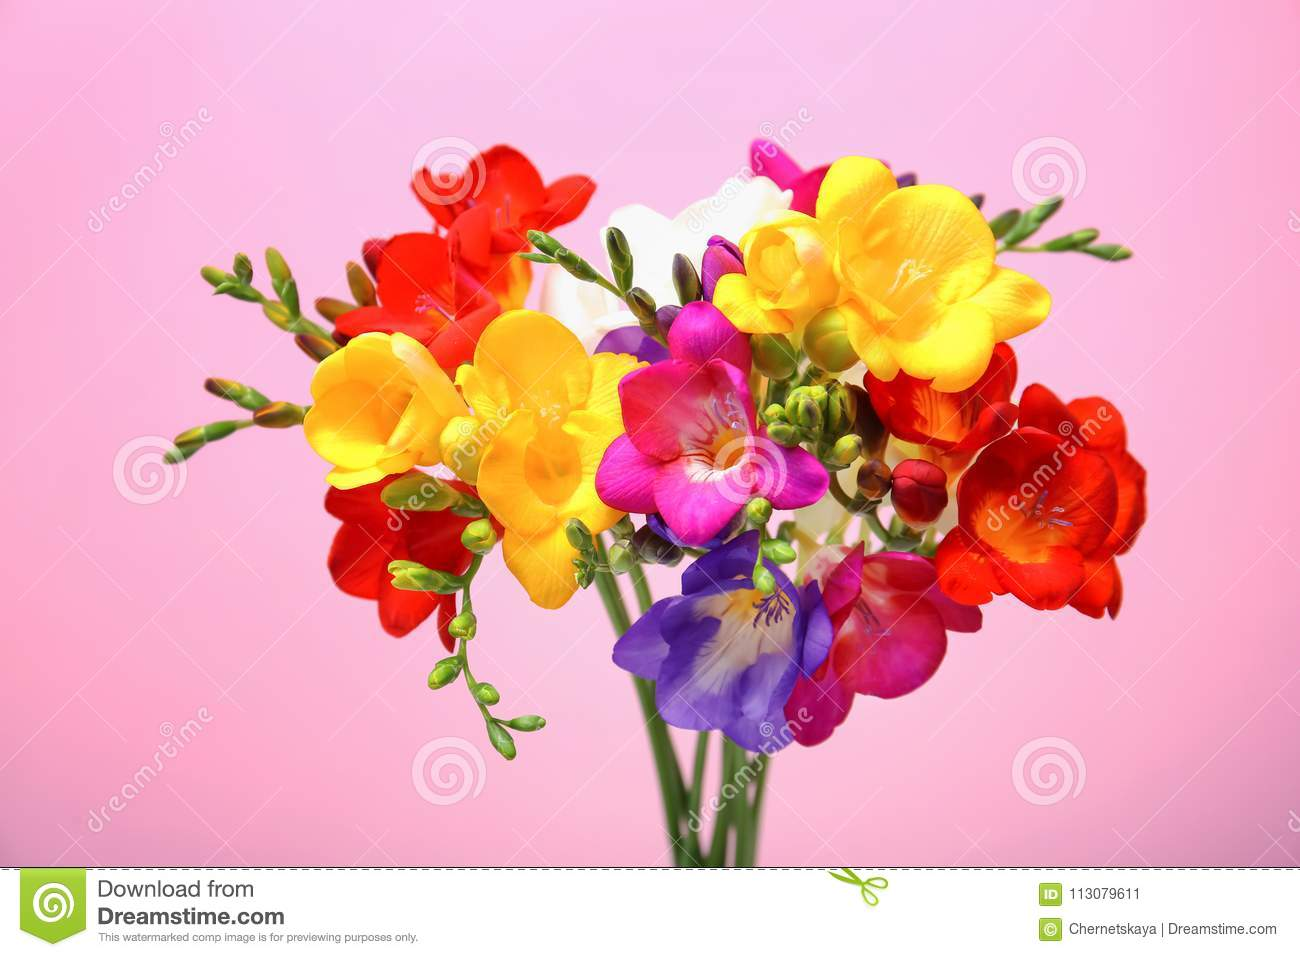 Bouquet with beautiful freesia flowers stock image image of download bouquet with beautiful freesia flowers stock image image of blossom decor 113079611 izmirmasajfo